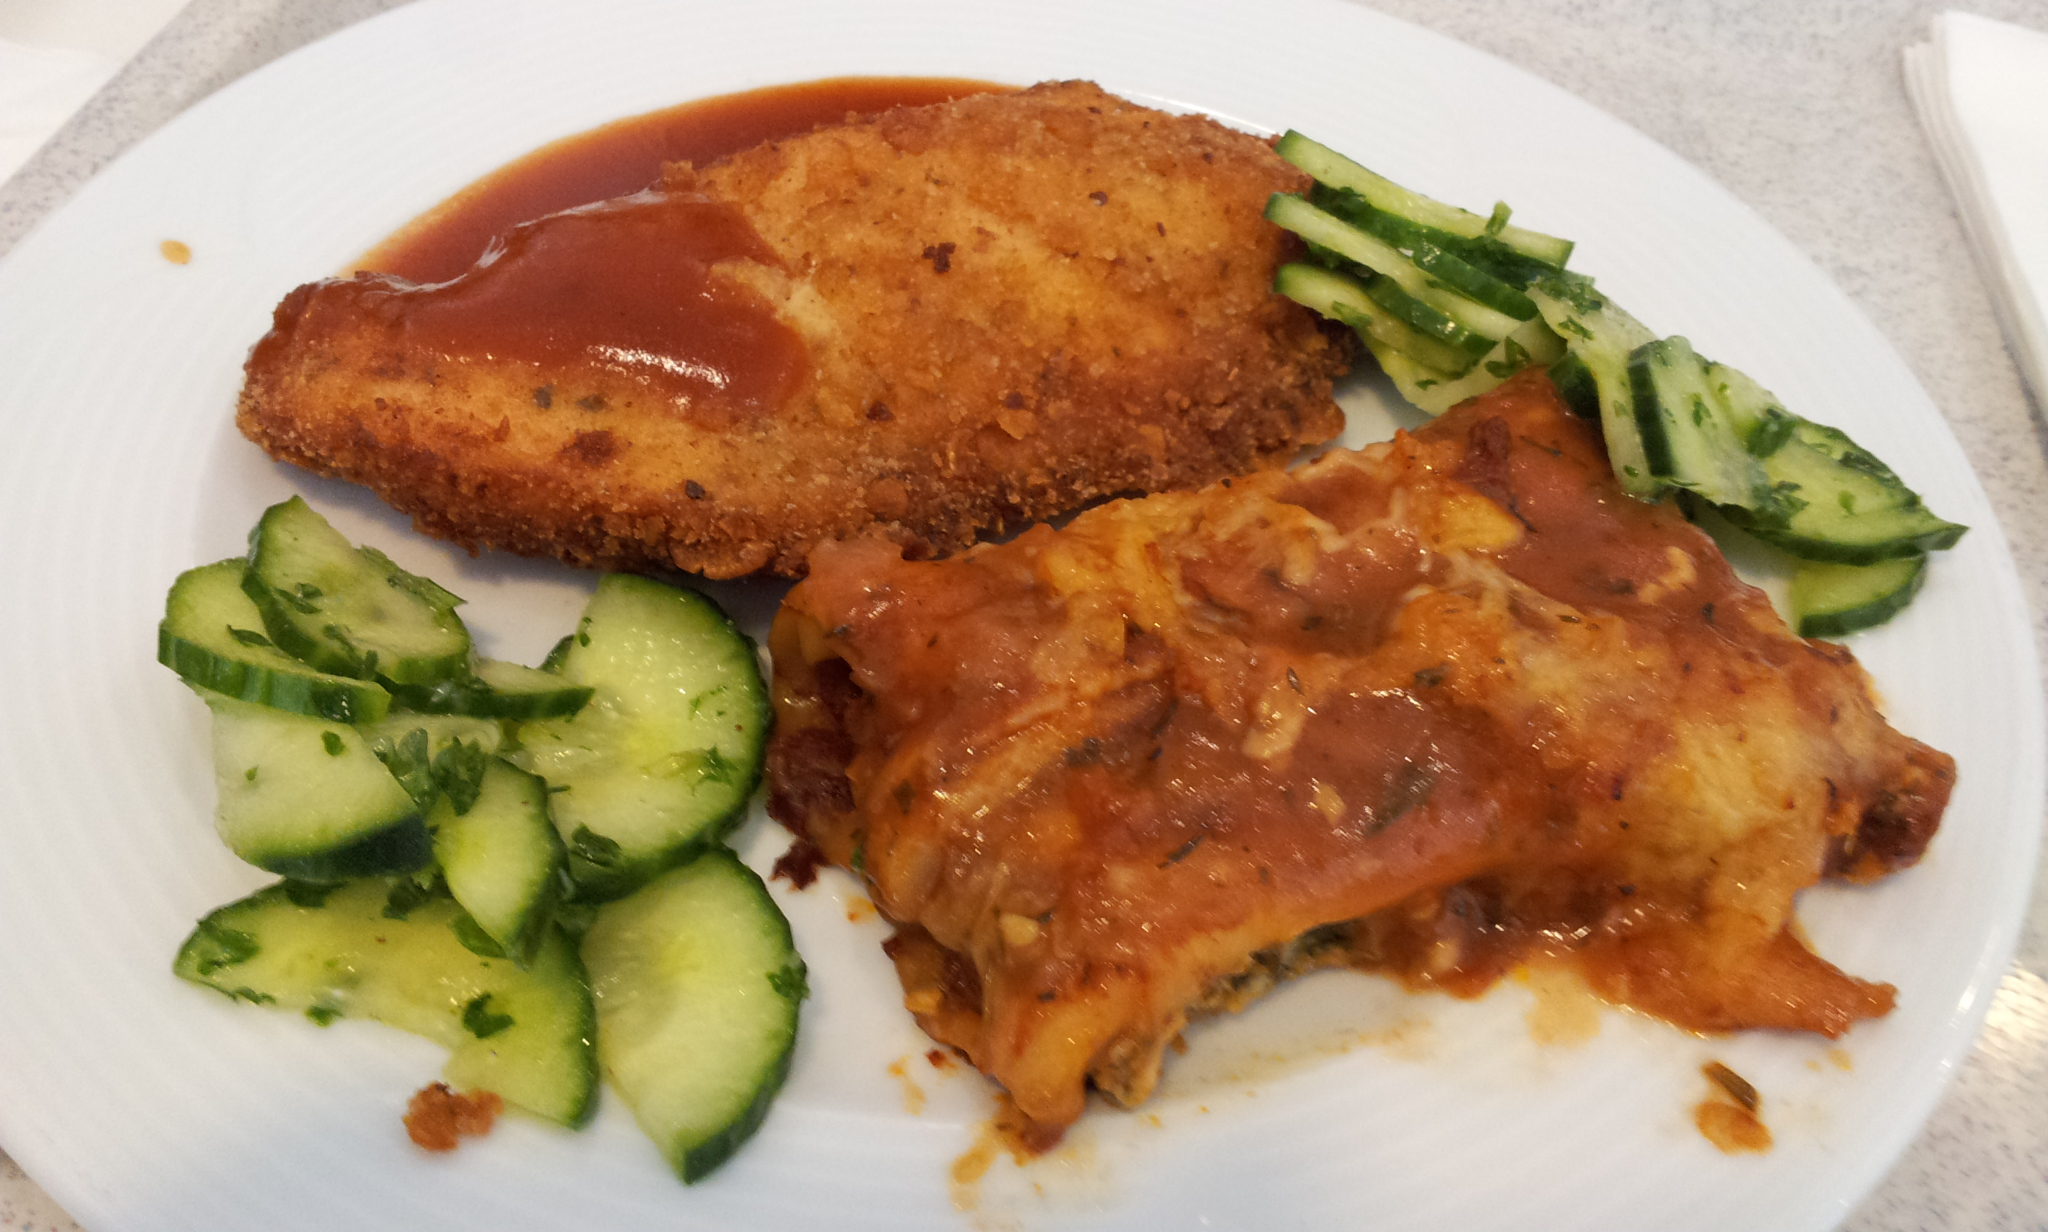 Holz • 2013-12-17 • Haehnchenschnitzel und Cannelloni